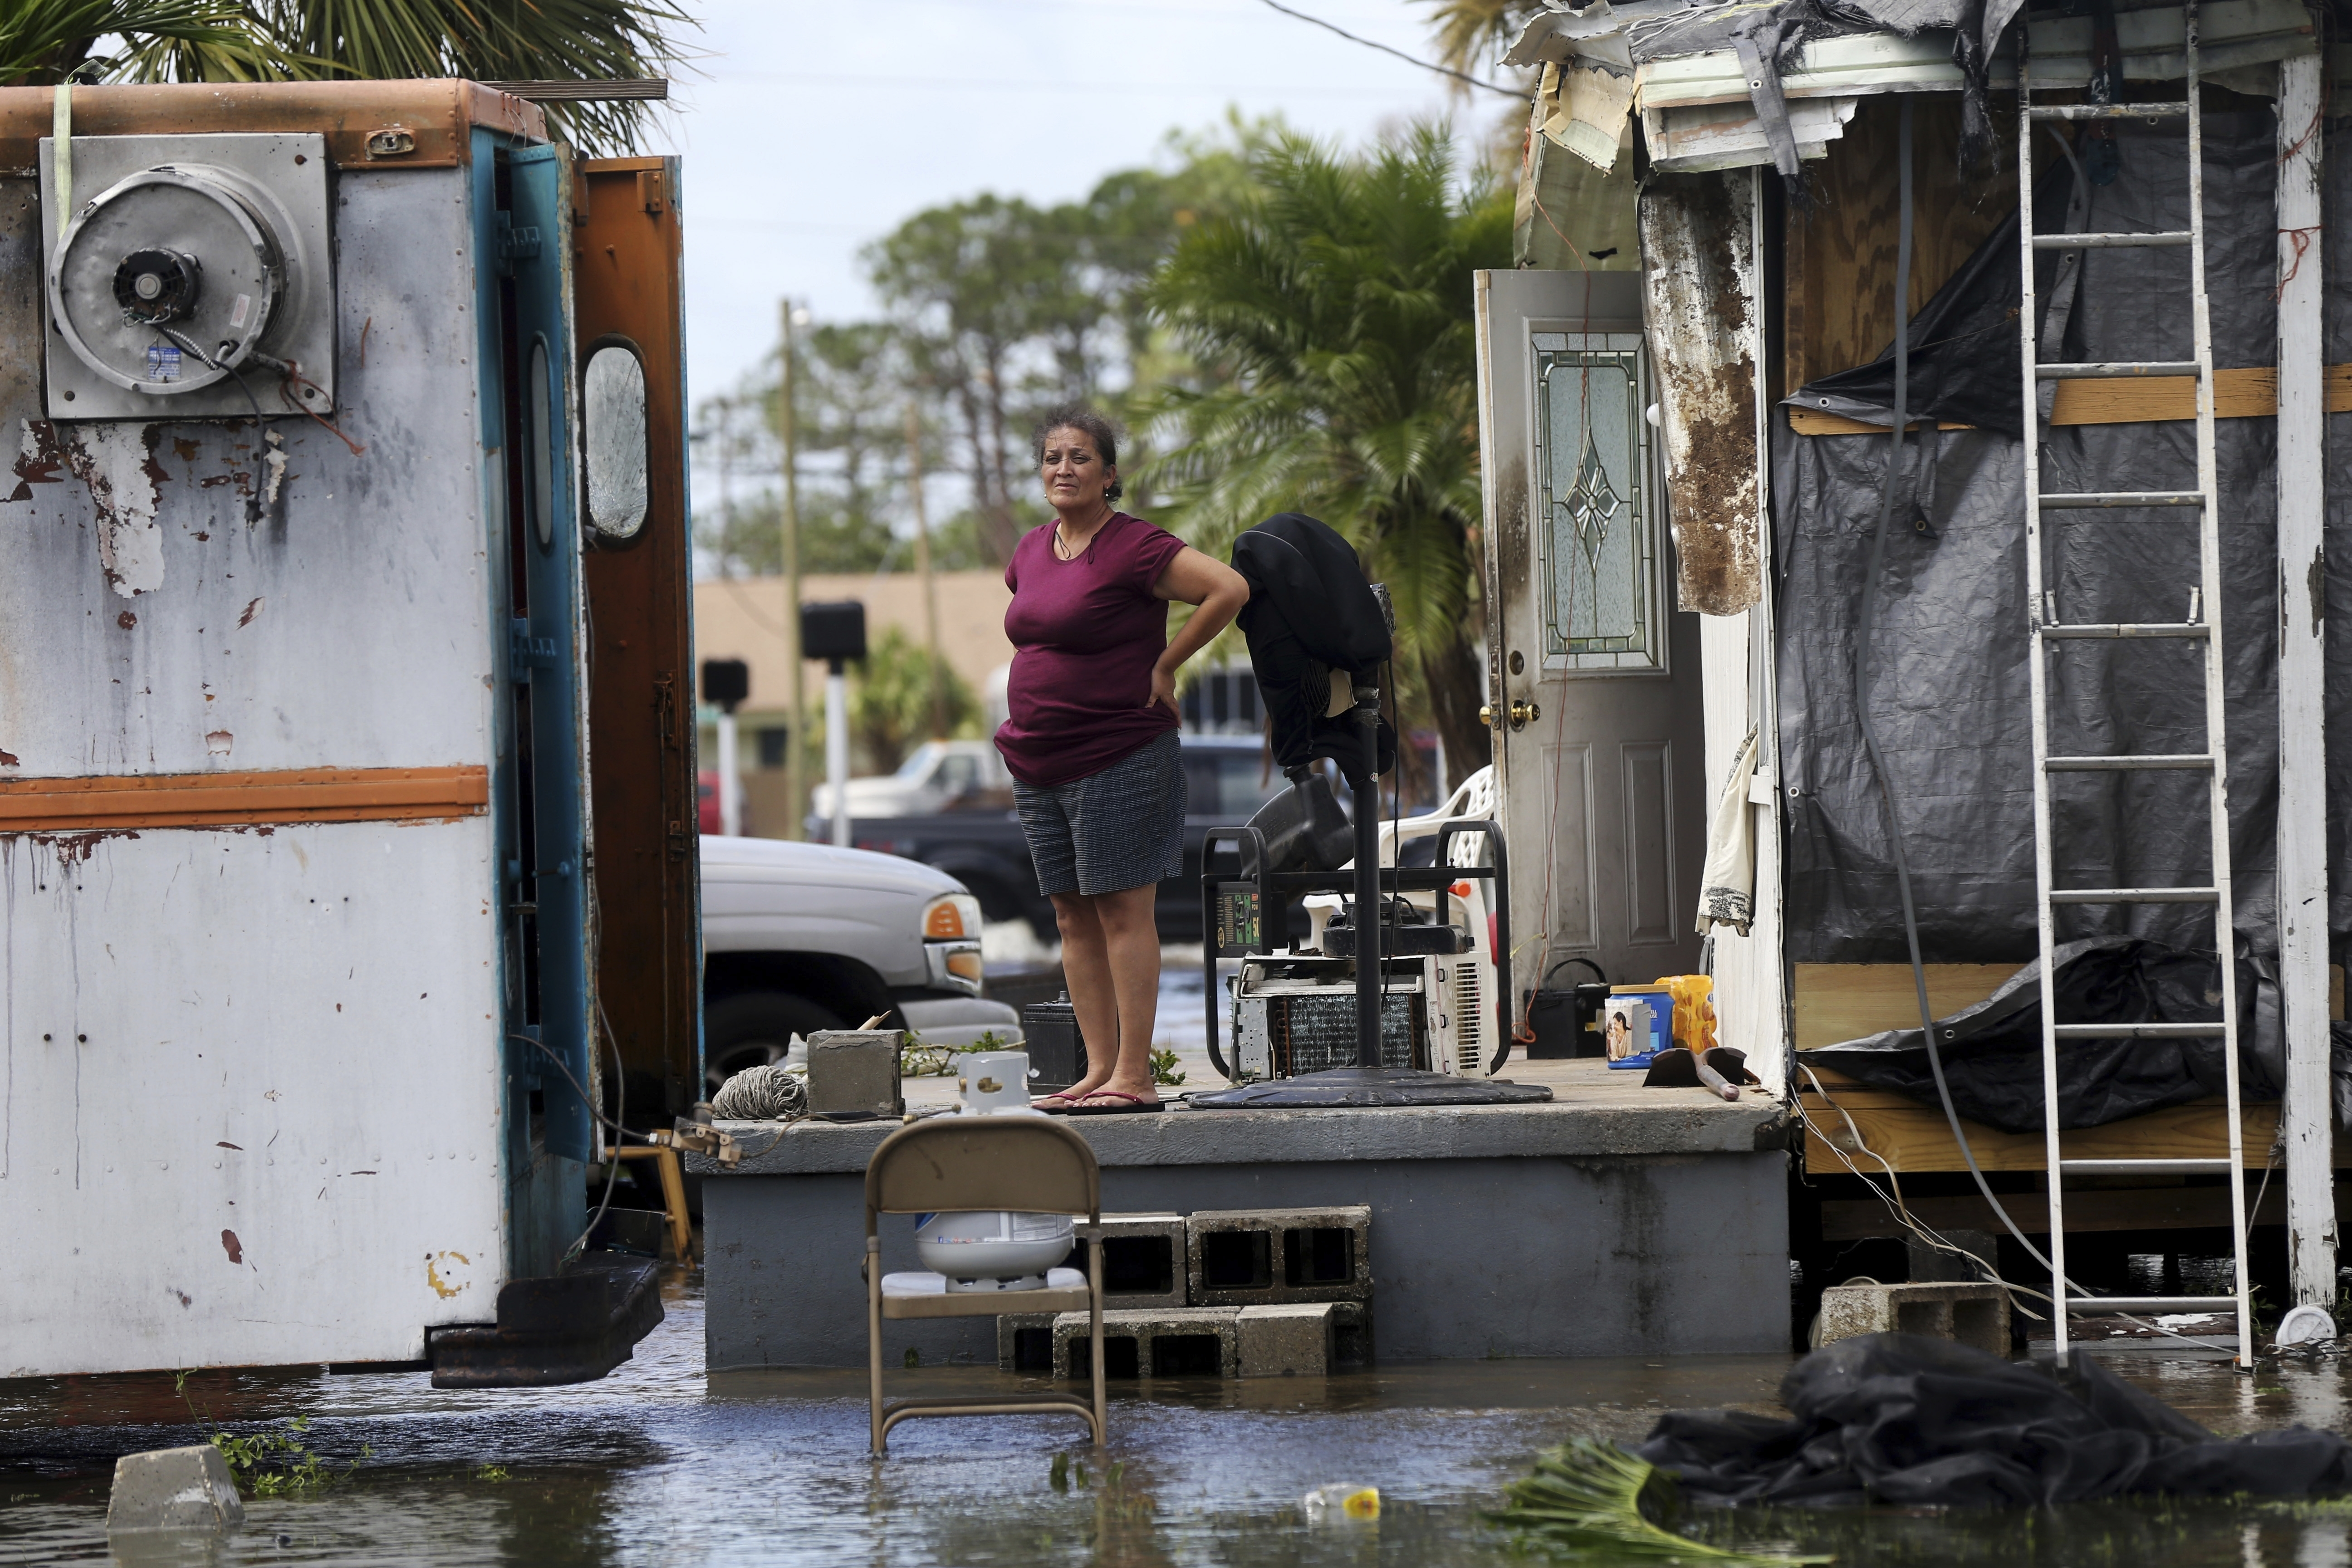 Irma The Poor-2 In this Sept. 11, 2017 file photo, Elida Dimas looks at floodwaters from her porch, in the aftermath of Hurricane Irma, in Immokalee, Fla. Irma badly damaged Dimas' mobile home and destroyed another she and her husband used for rental income, making their tough life even harder. (AP Photo/Gerald Herbert)